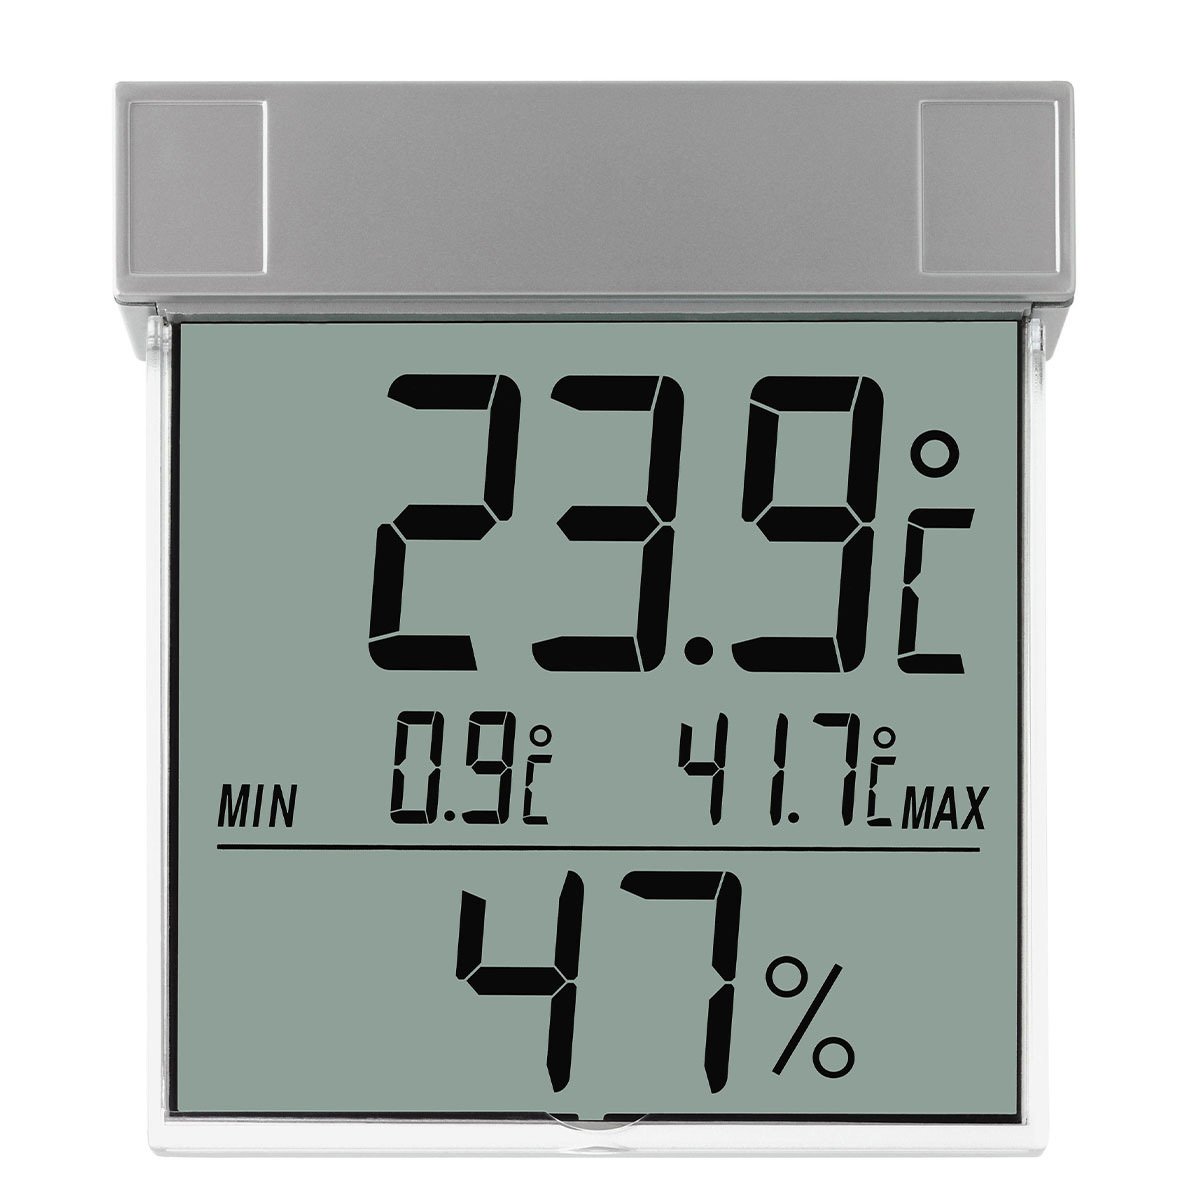 30-5020-digitales-fenster-thermo-hygrometer-vision-1200x1200px.jpg